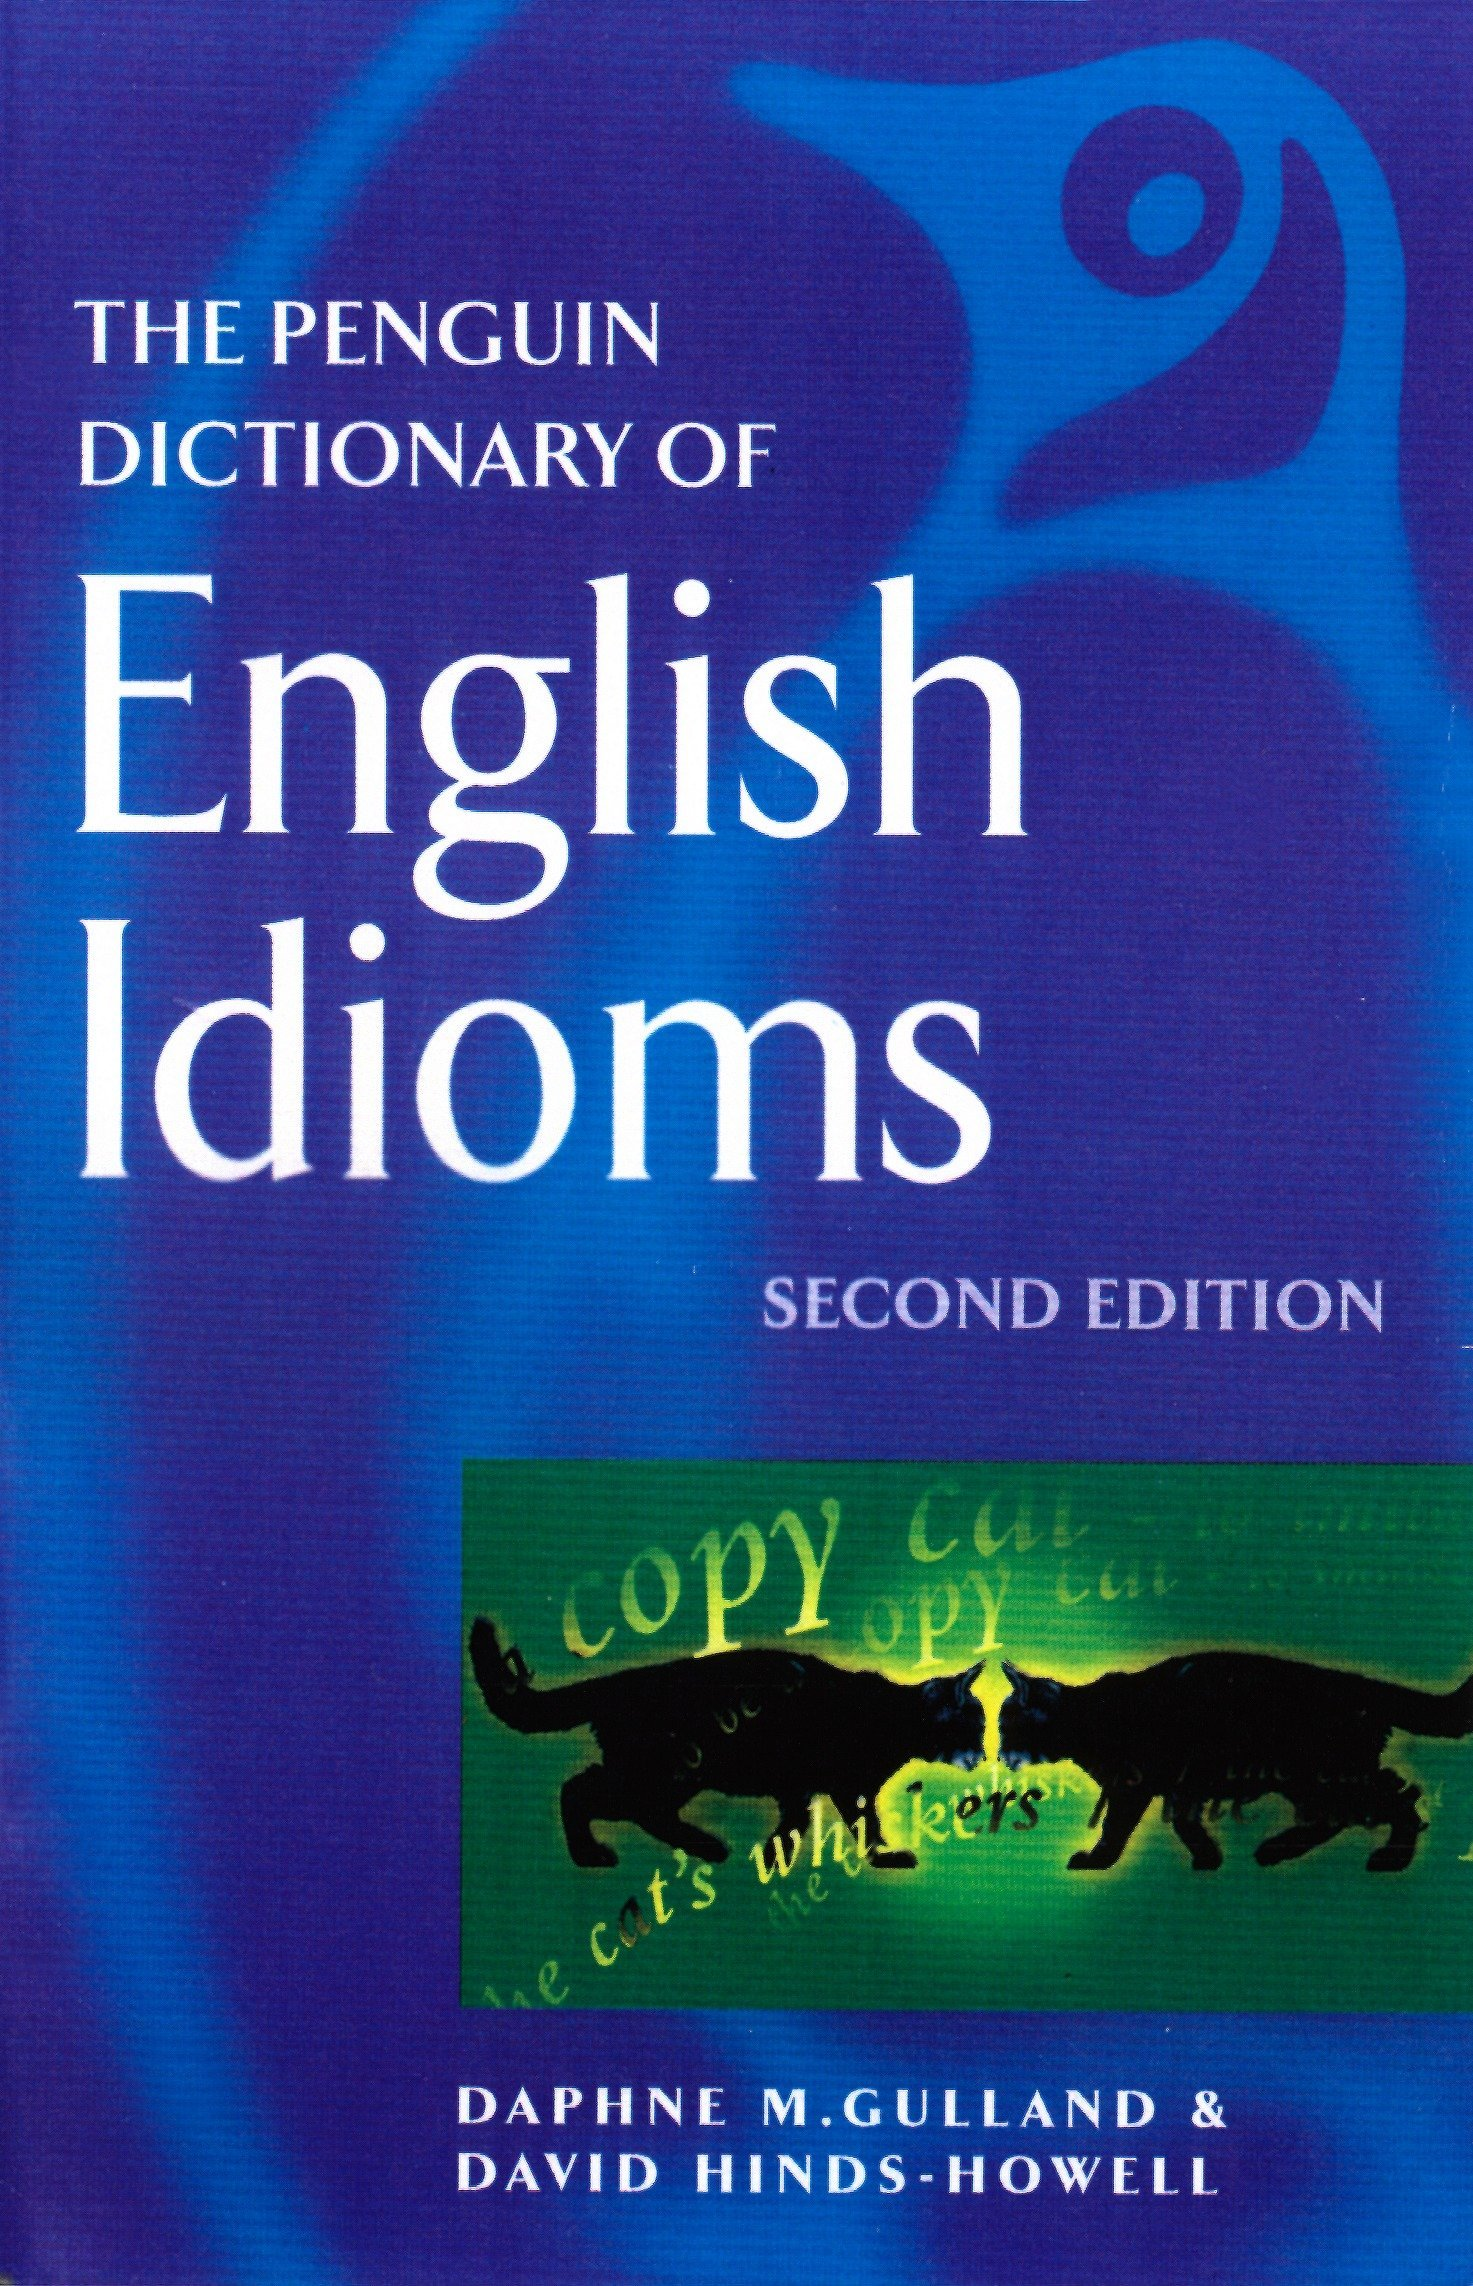 The Penguin Dictionary of English Idioms (Penguin Reference Books)